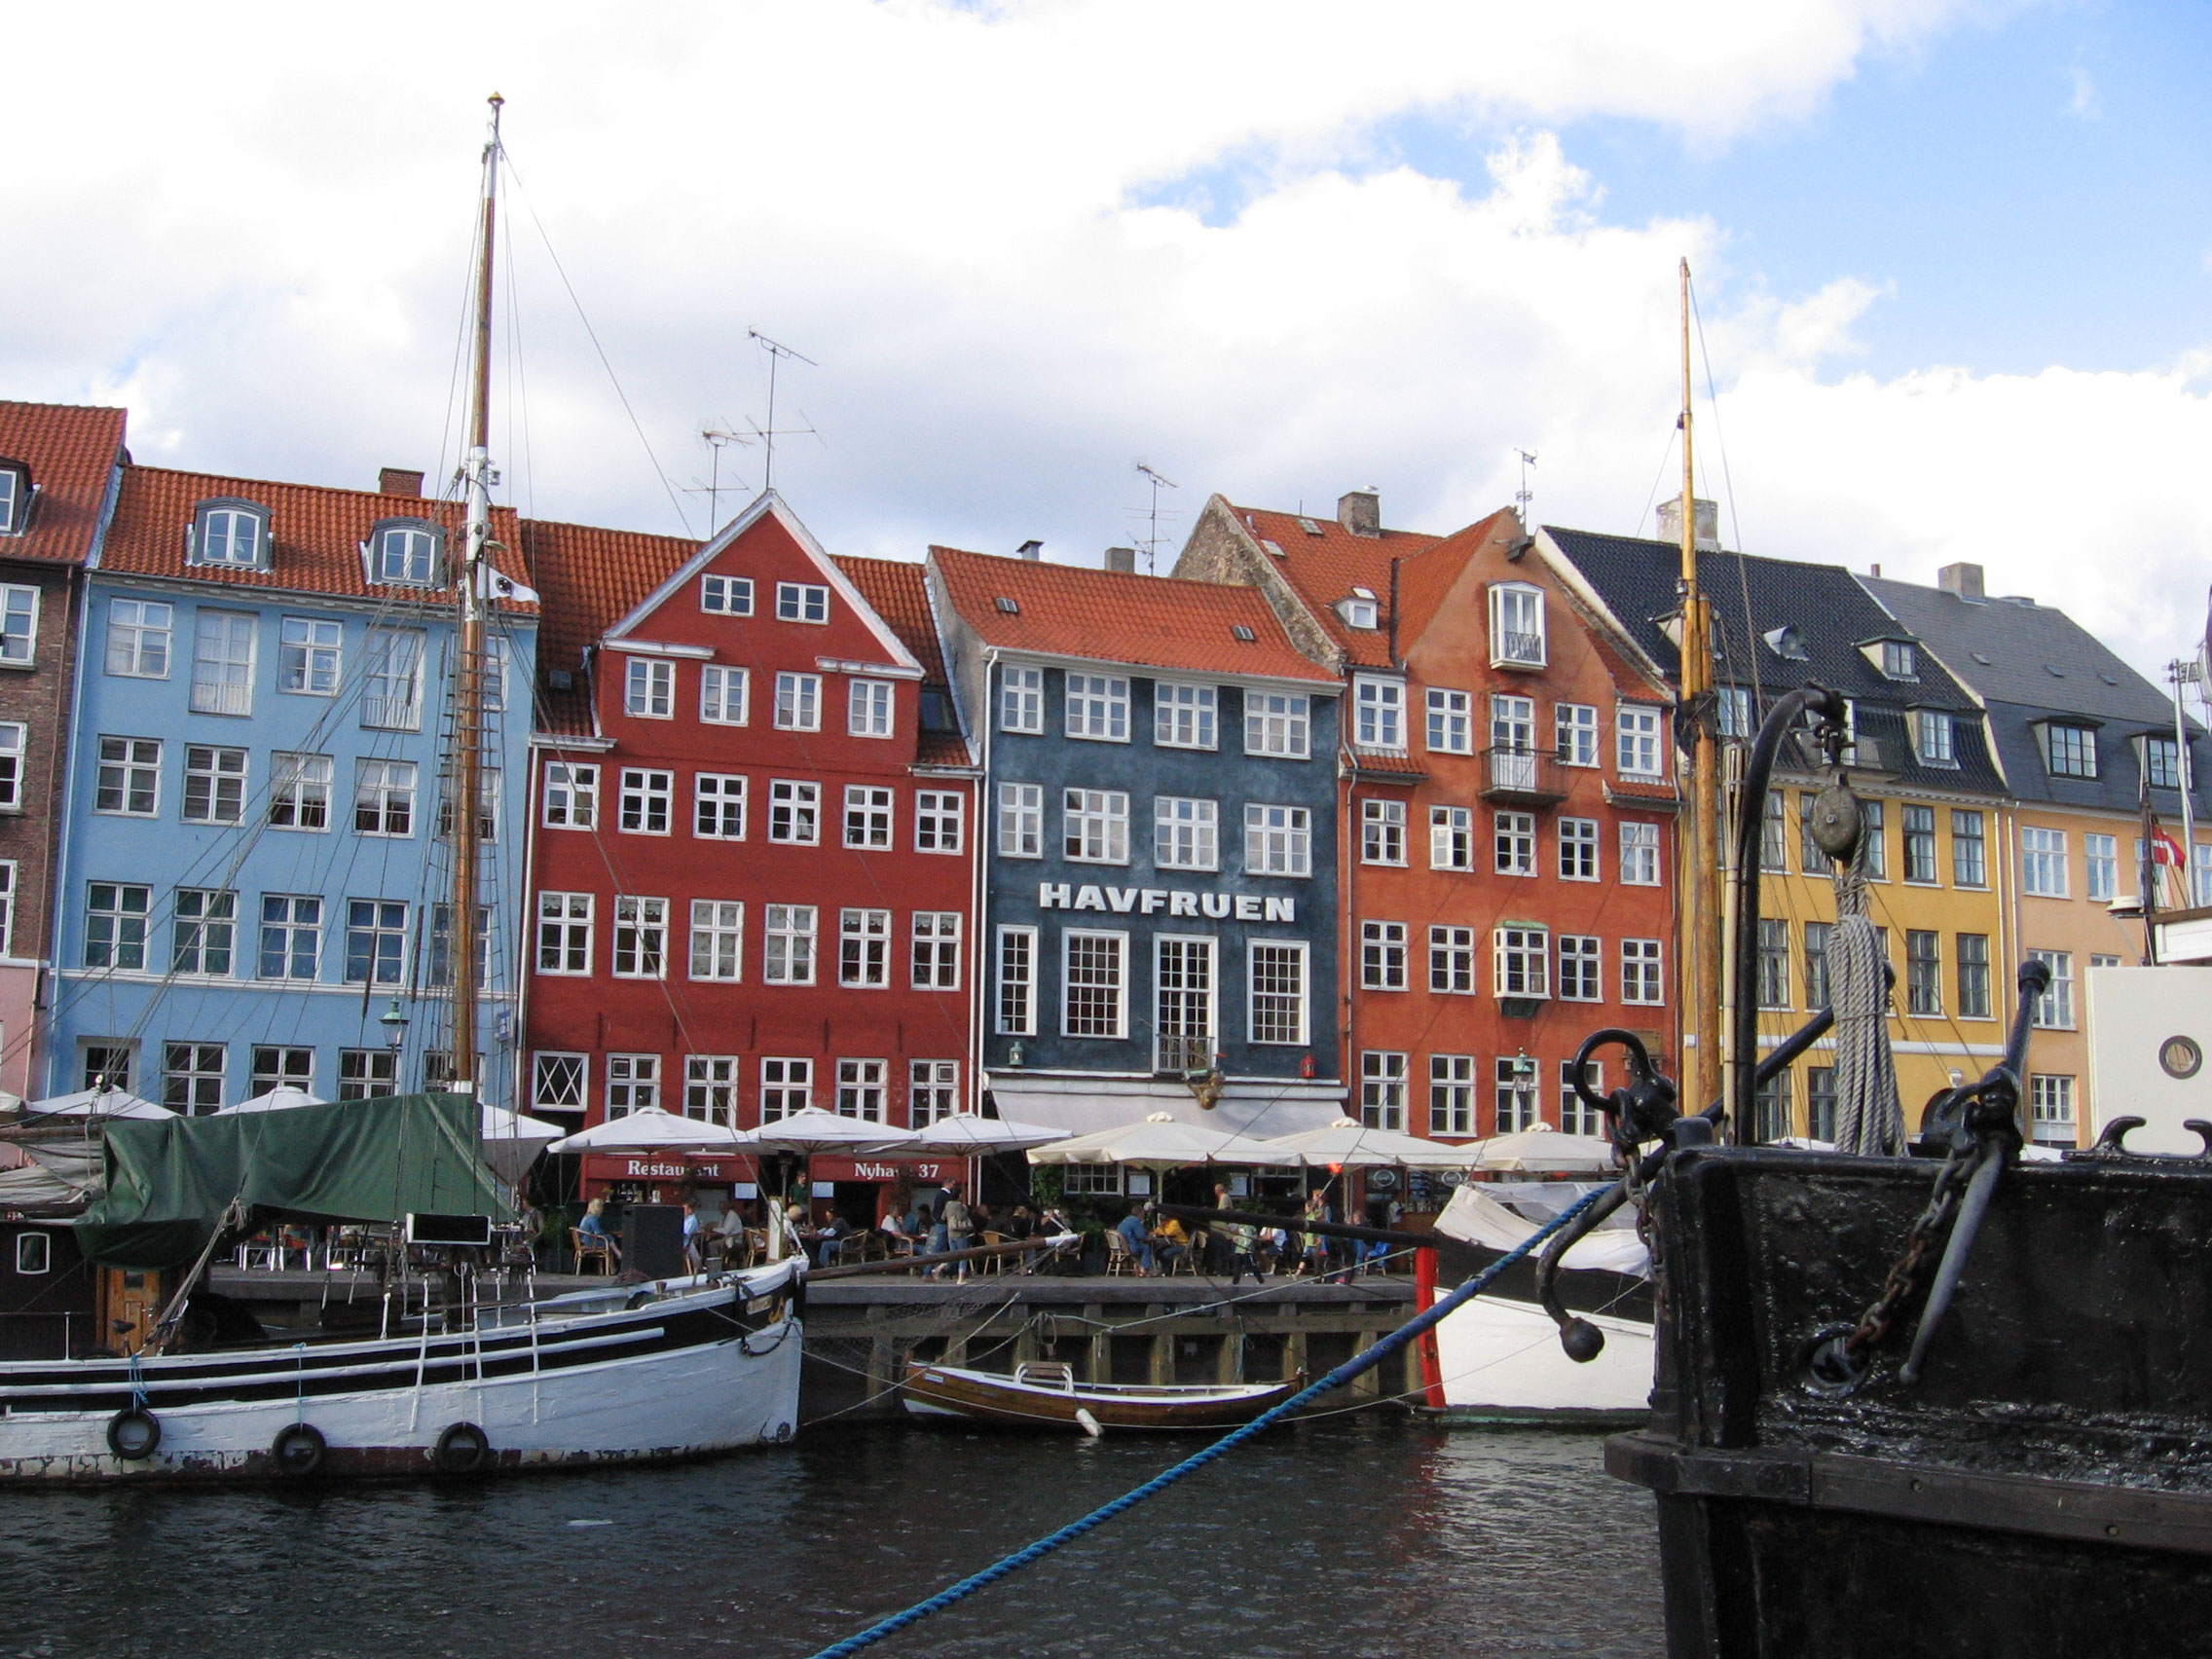 Copenhagen: The 'new' harbour